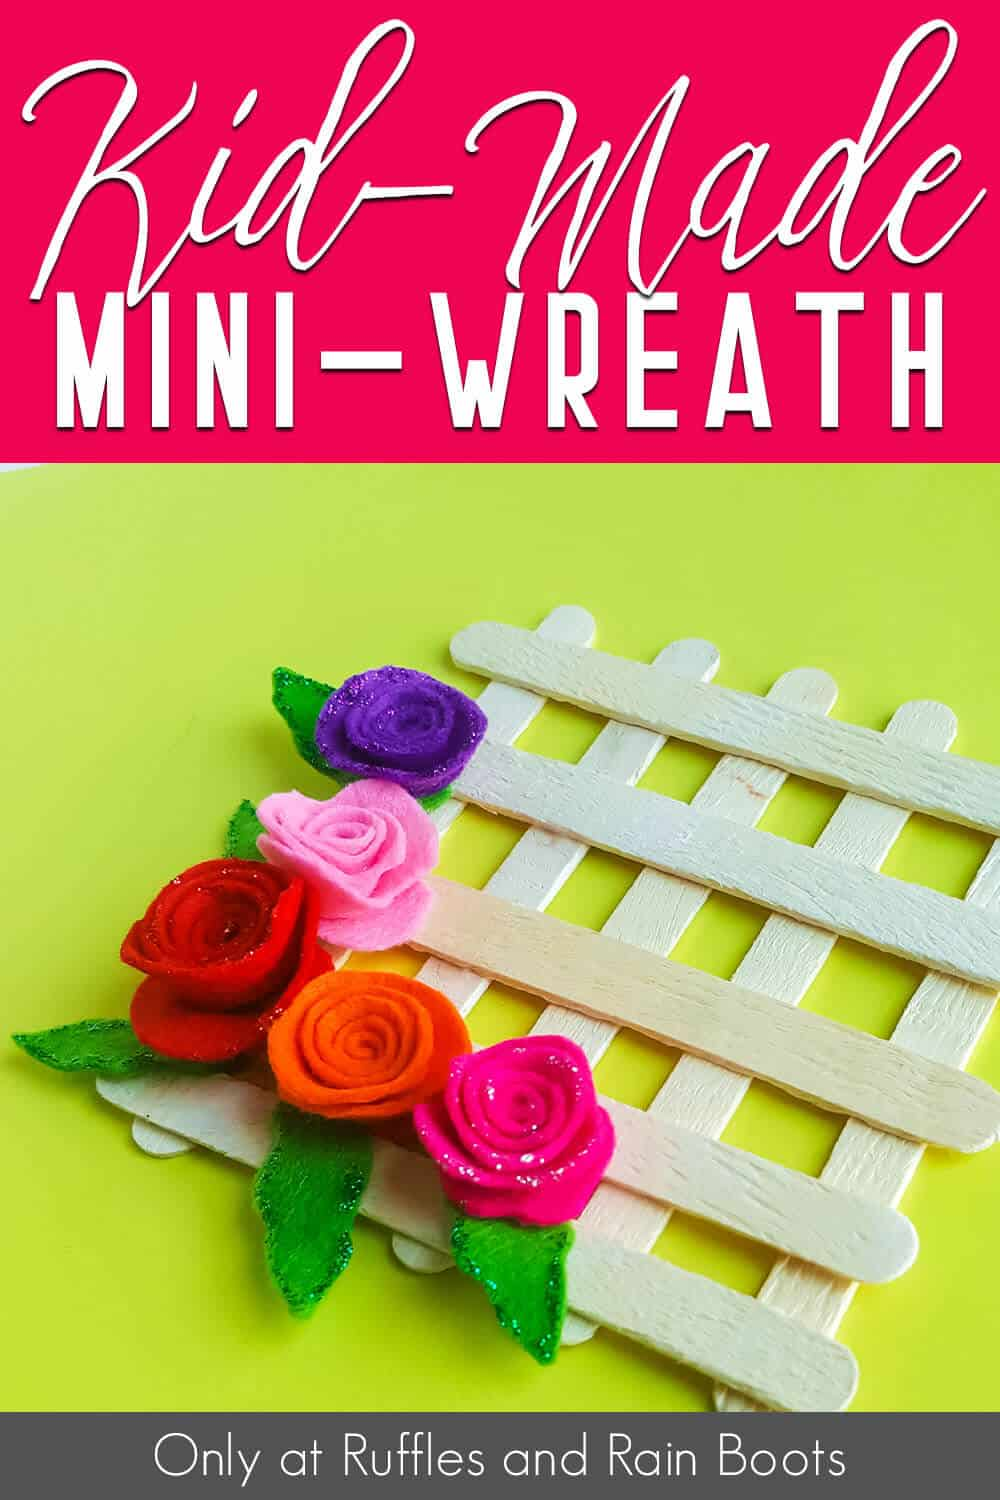 kid-made mini wreath craft with text which reads kid-made mini-wreath